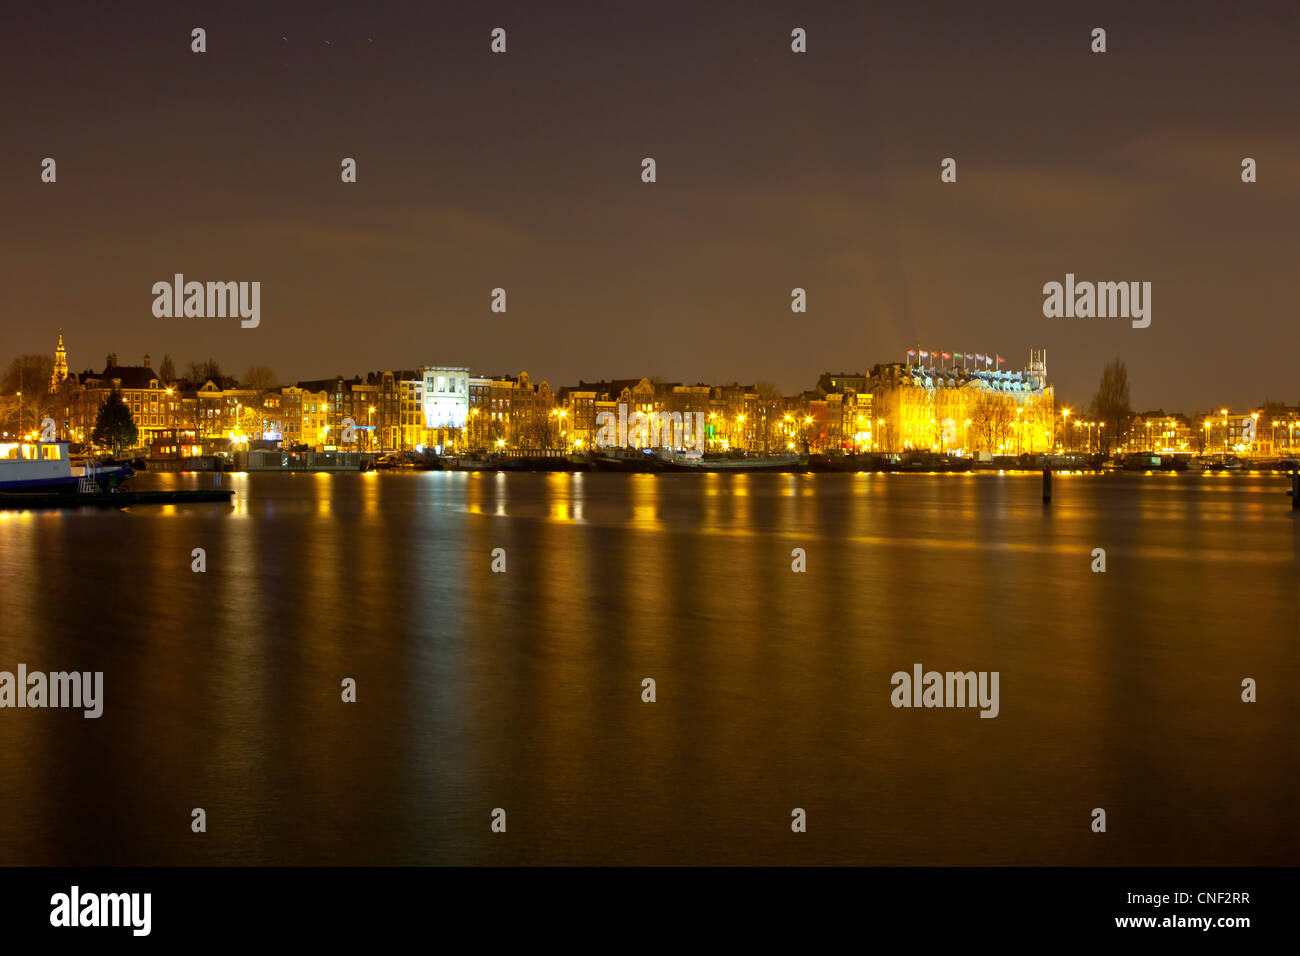 Amsterdam Skyline Amsterdam Skyline At Night With Historic Buildings And